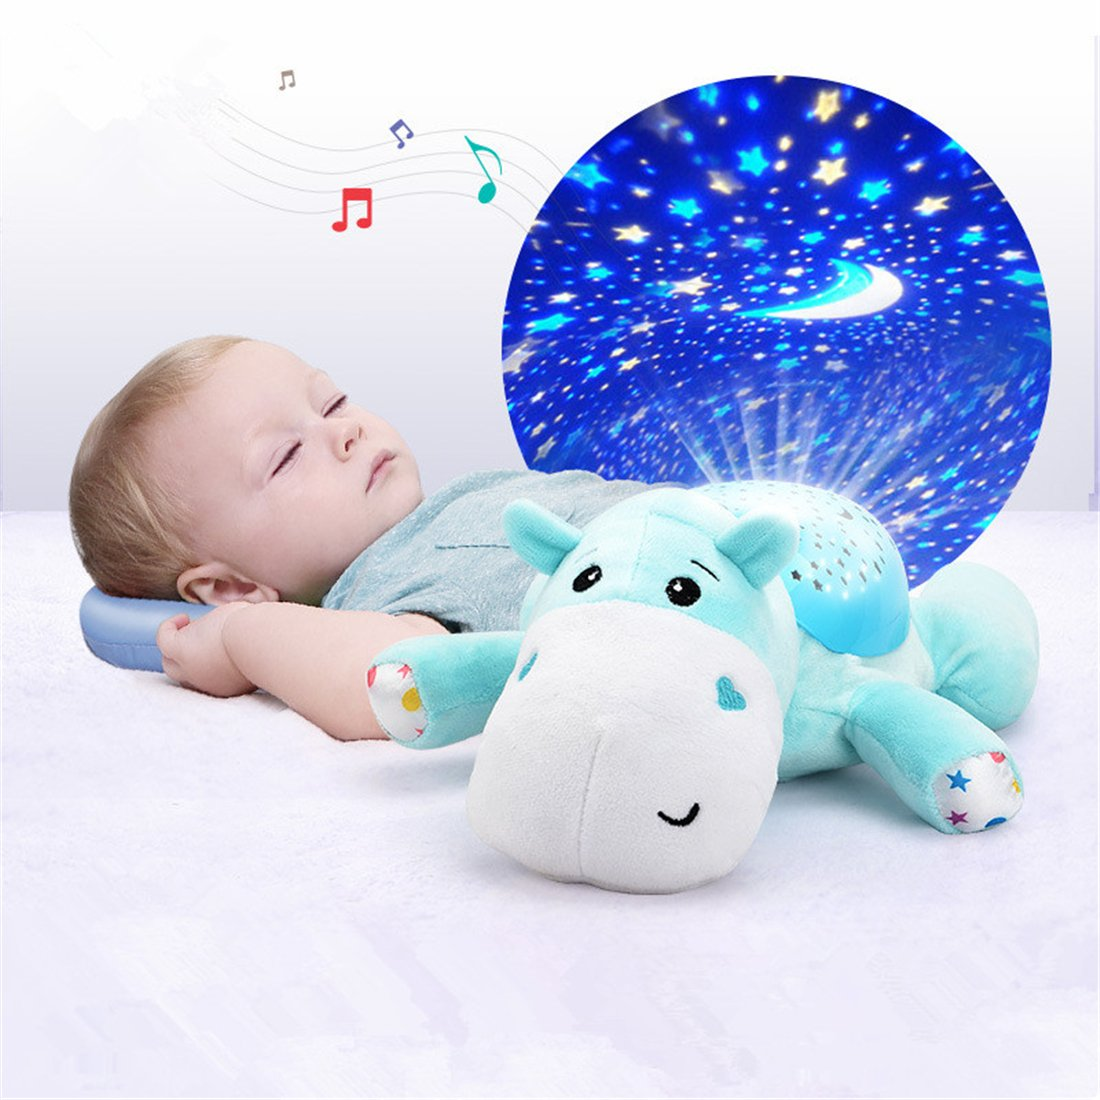 ESOCOME Baby Plush Hippo Toy Hypnotic Star and Moon Light Projector with Melodies -Animal Doll Sleep Soother Starry Night Light for Baby Infant Kids Nursery by ESOCOME (Image #2)